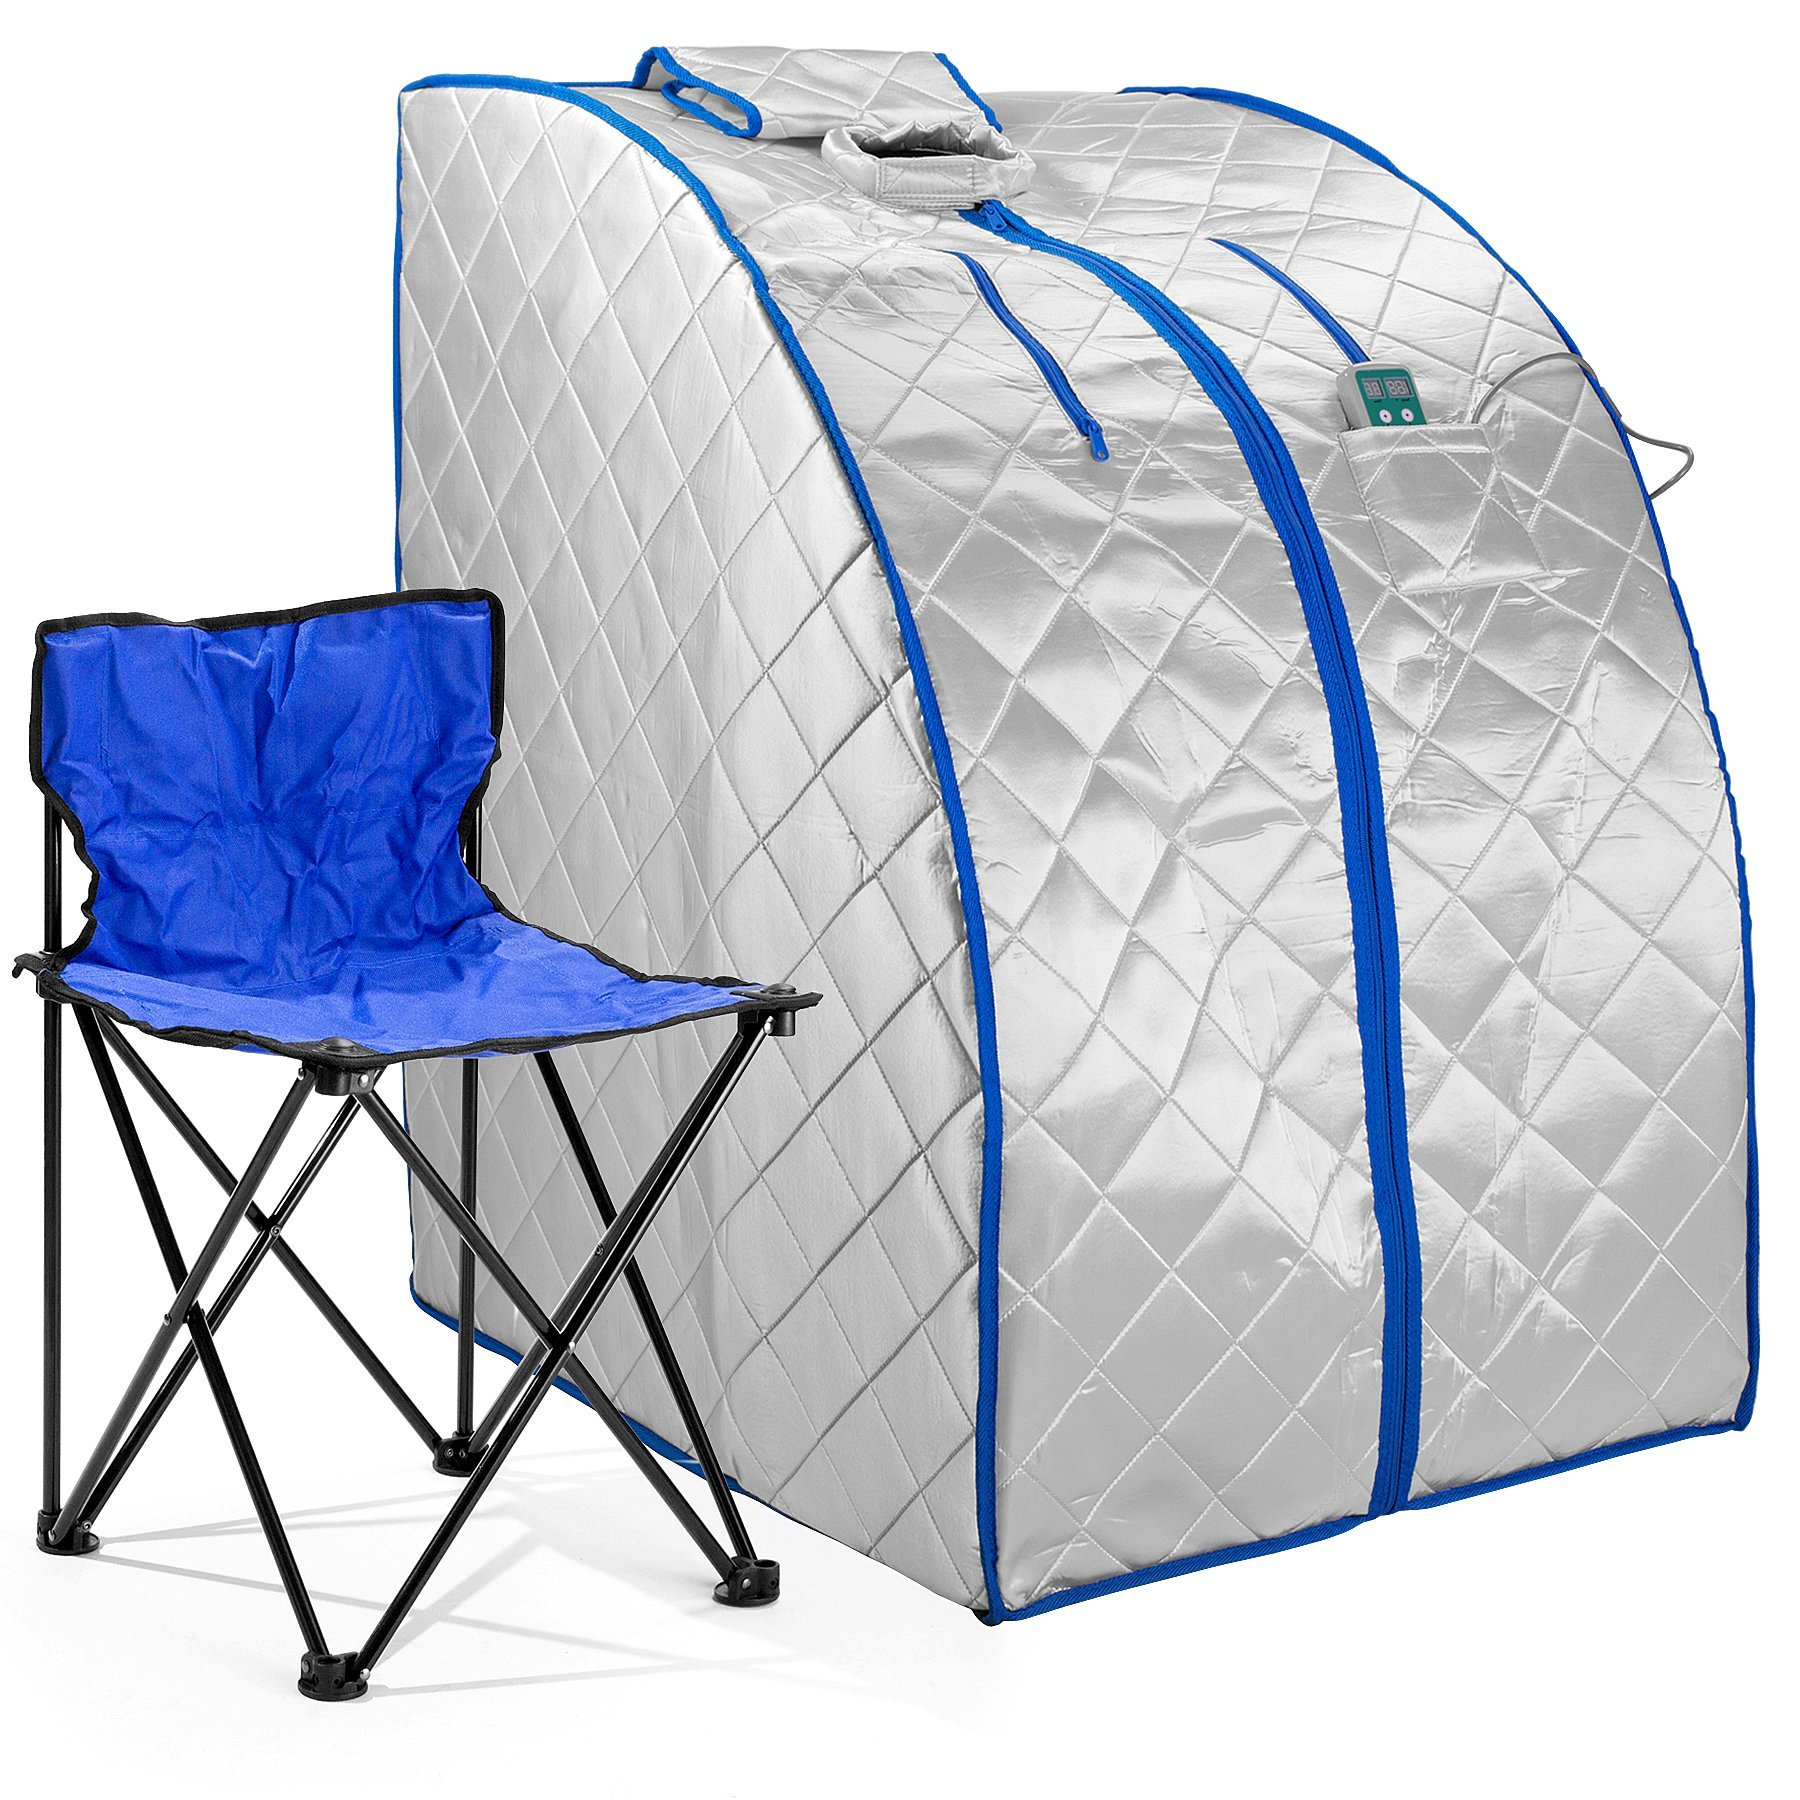 Durasage Infrared IR Far Portable Indoor Personal Spa Sauna with Heating Foot Pad and Chair, X-Large, Silver by Durasage